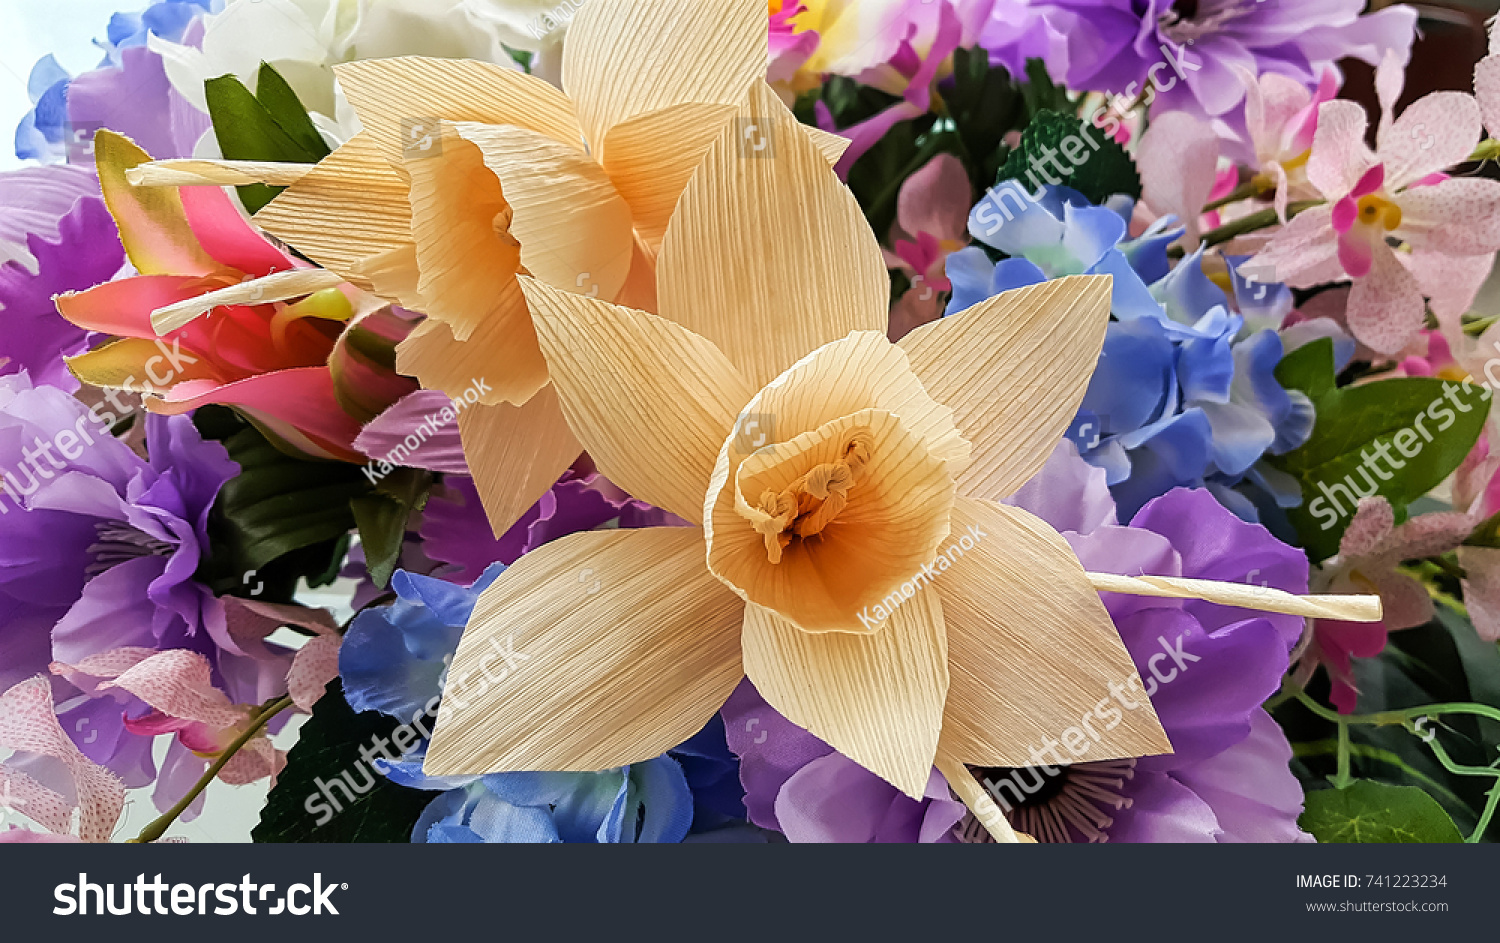 Mourning funeral wood flowers that thai stock photo edit now mourning funeral wood flowers that thai people made for the late hm king bhumibol adulyadejs royal izmirmasajfo